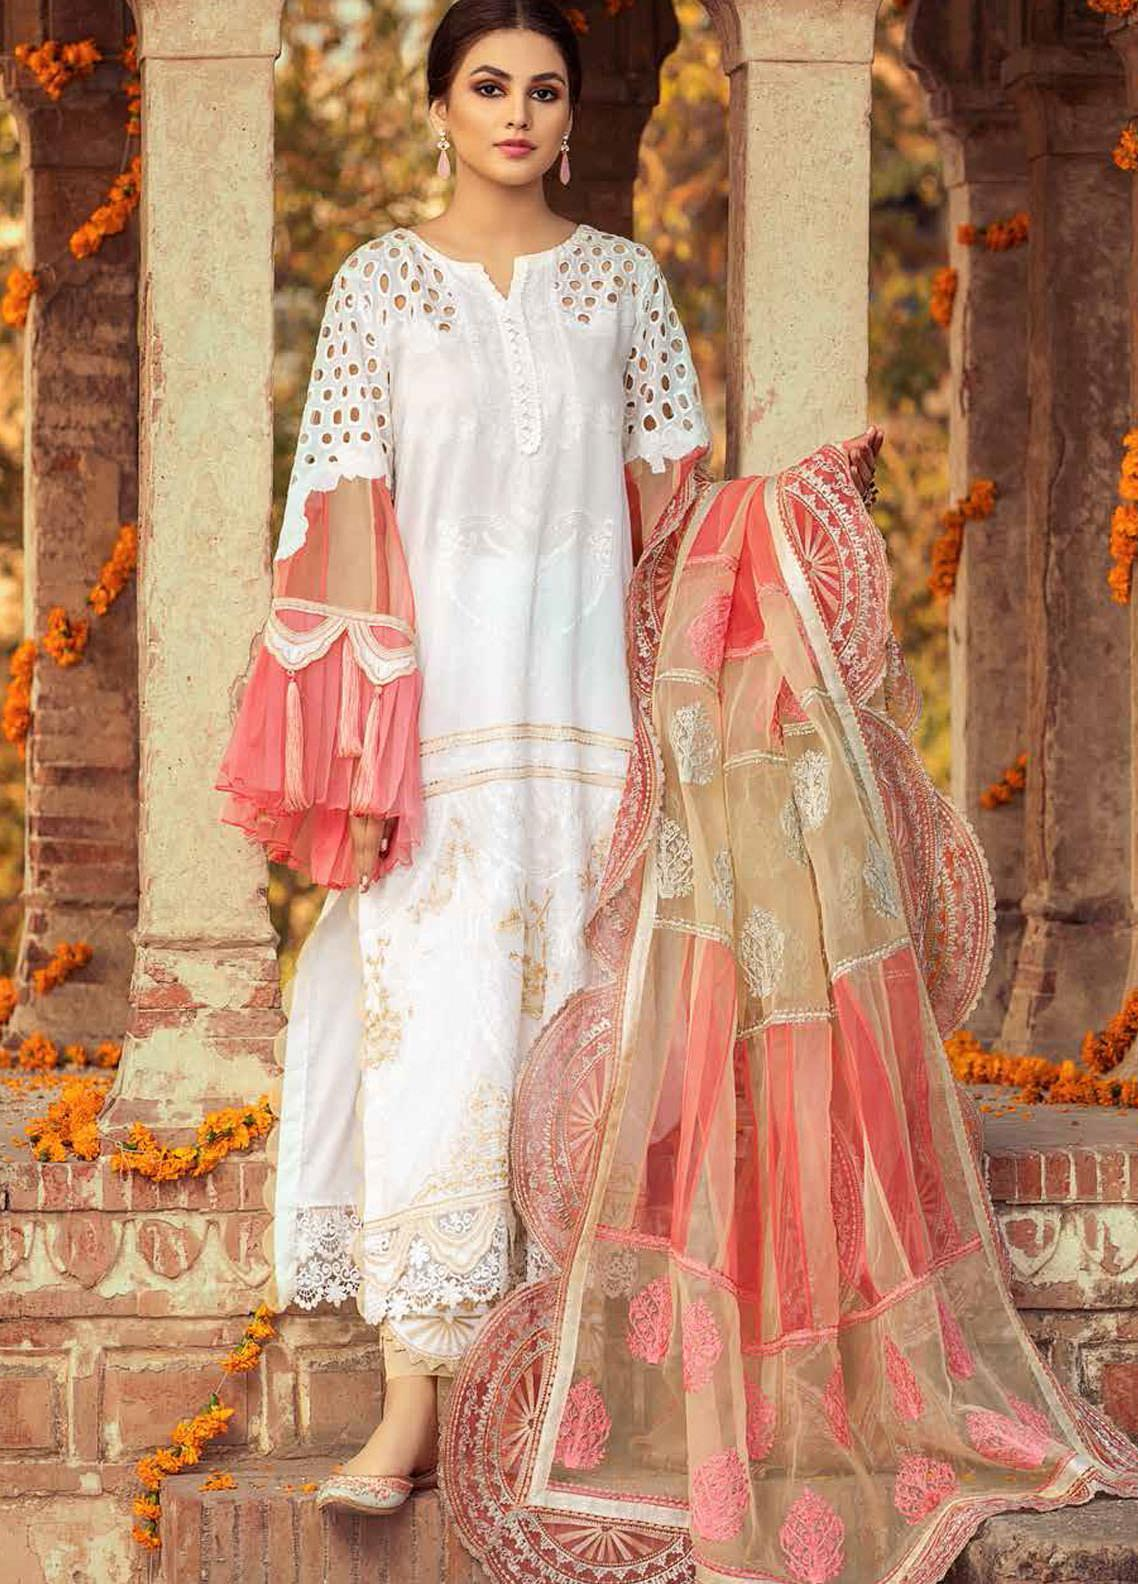 Gulzar By Charizma Embroidered Lawn Suits Unstitched 3 Piece CRZ21G 01 Dazed Delight - Summer Collection